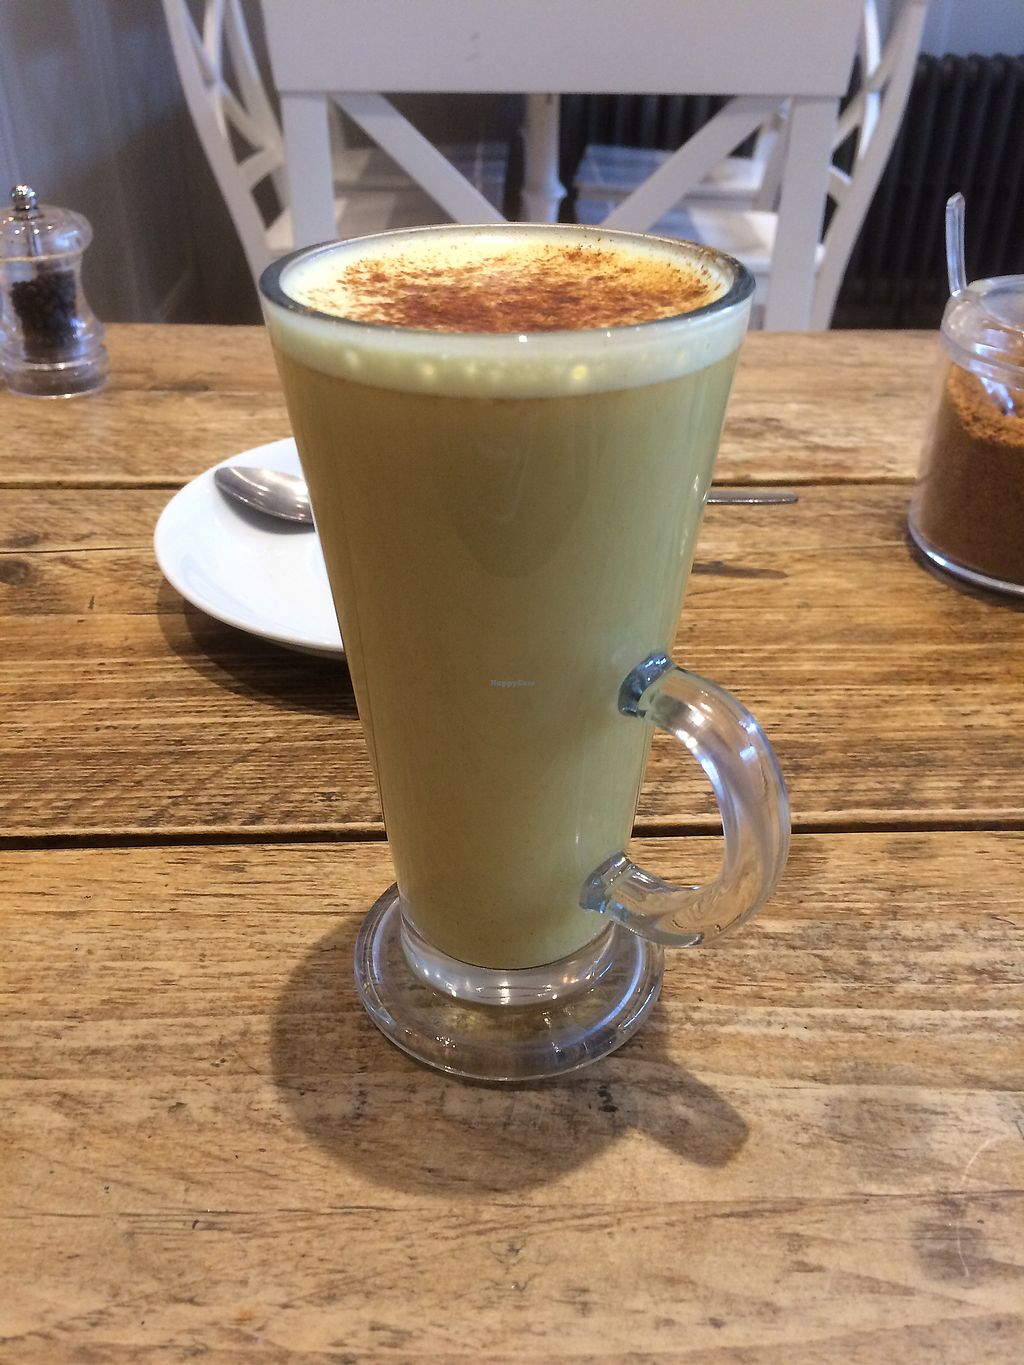 "Photo of Lu-Ma Cafe  by <a href=""/members/profile/TreeBrown"">TreeBrown</a> <br/>Turmeric latte  <br/> October 24, 2017  - <a href='/contact/abuse/image/44914/318361'>Report</a>"